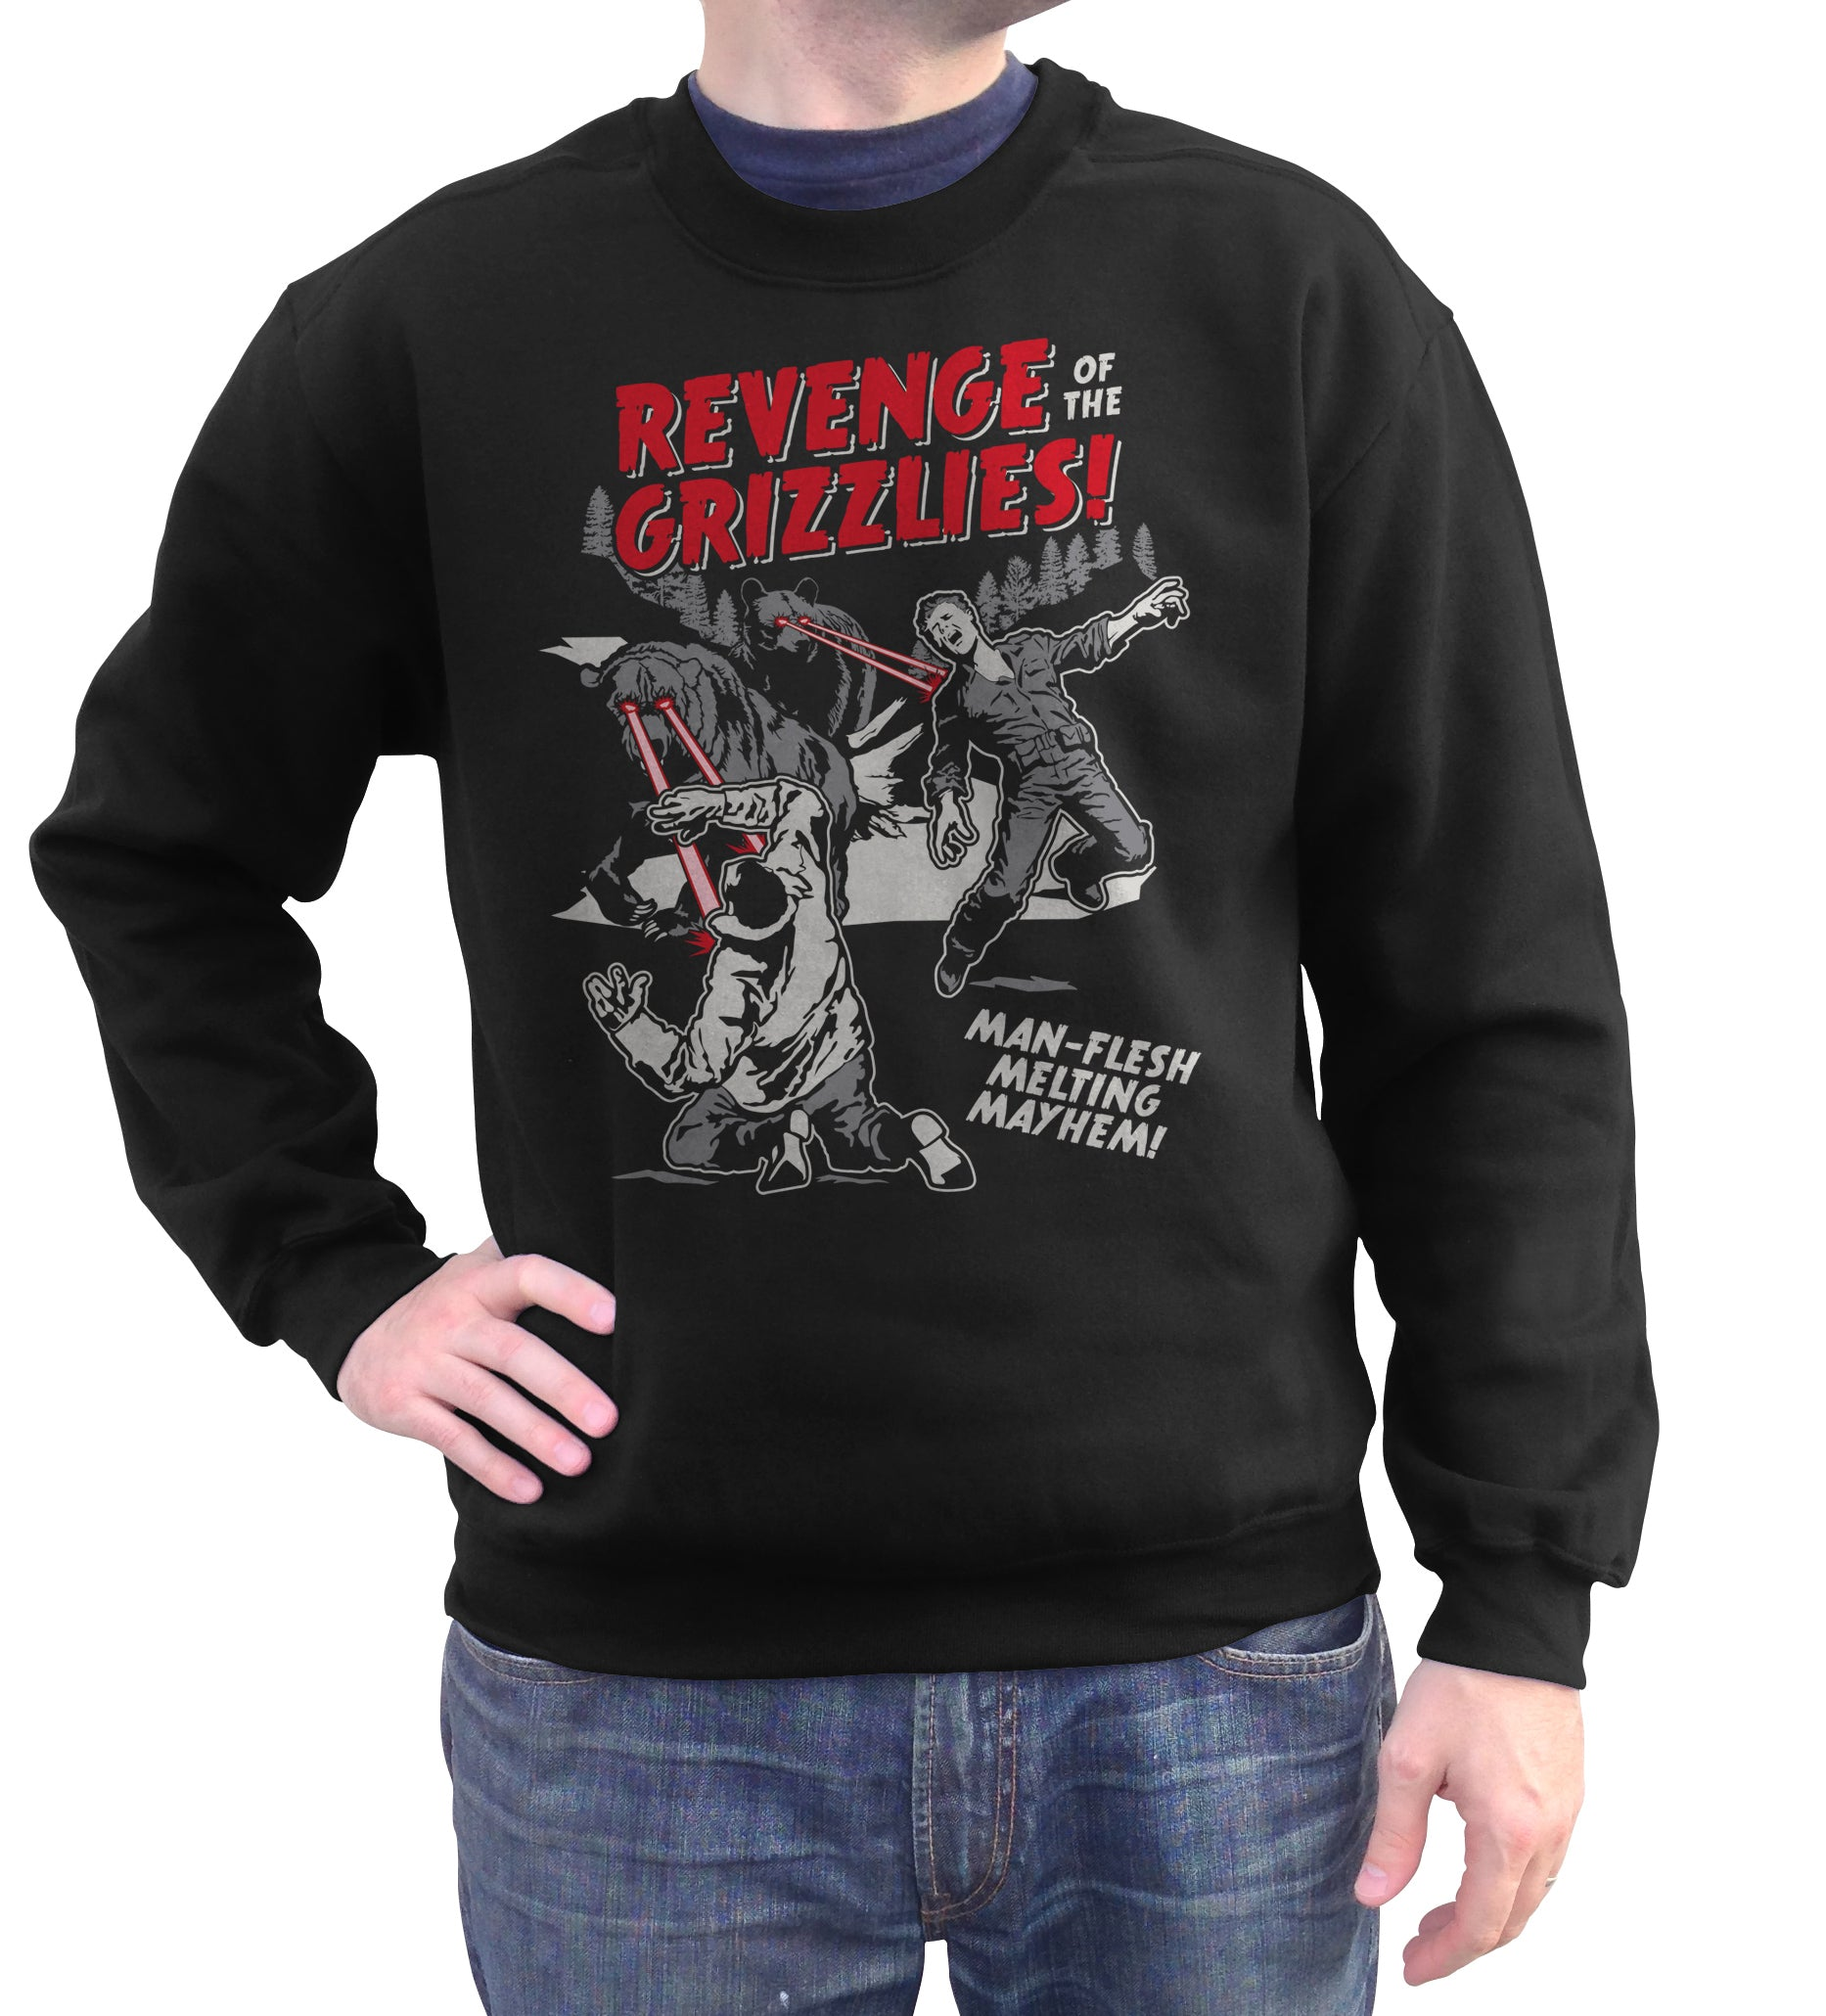 Unisex Revenge of the Grizzlies Sweatshirt - By Ex-Boyfriend